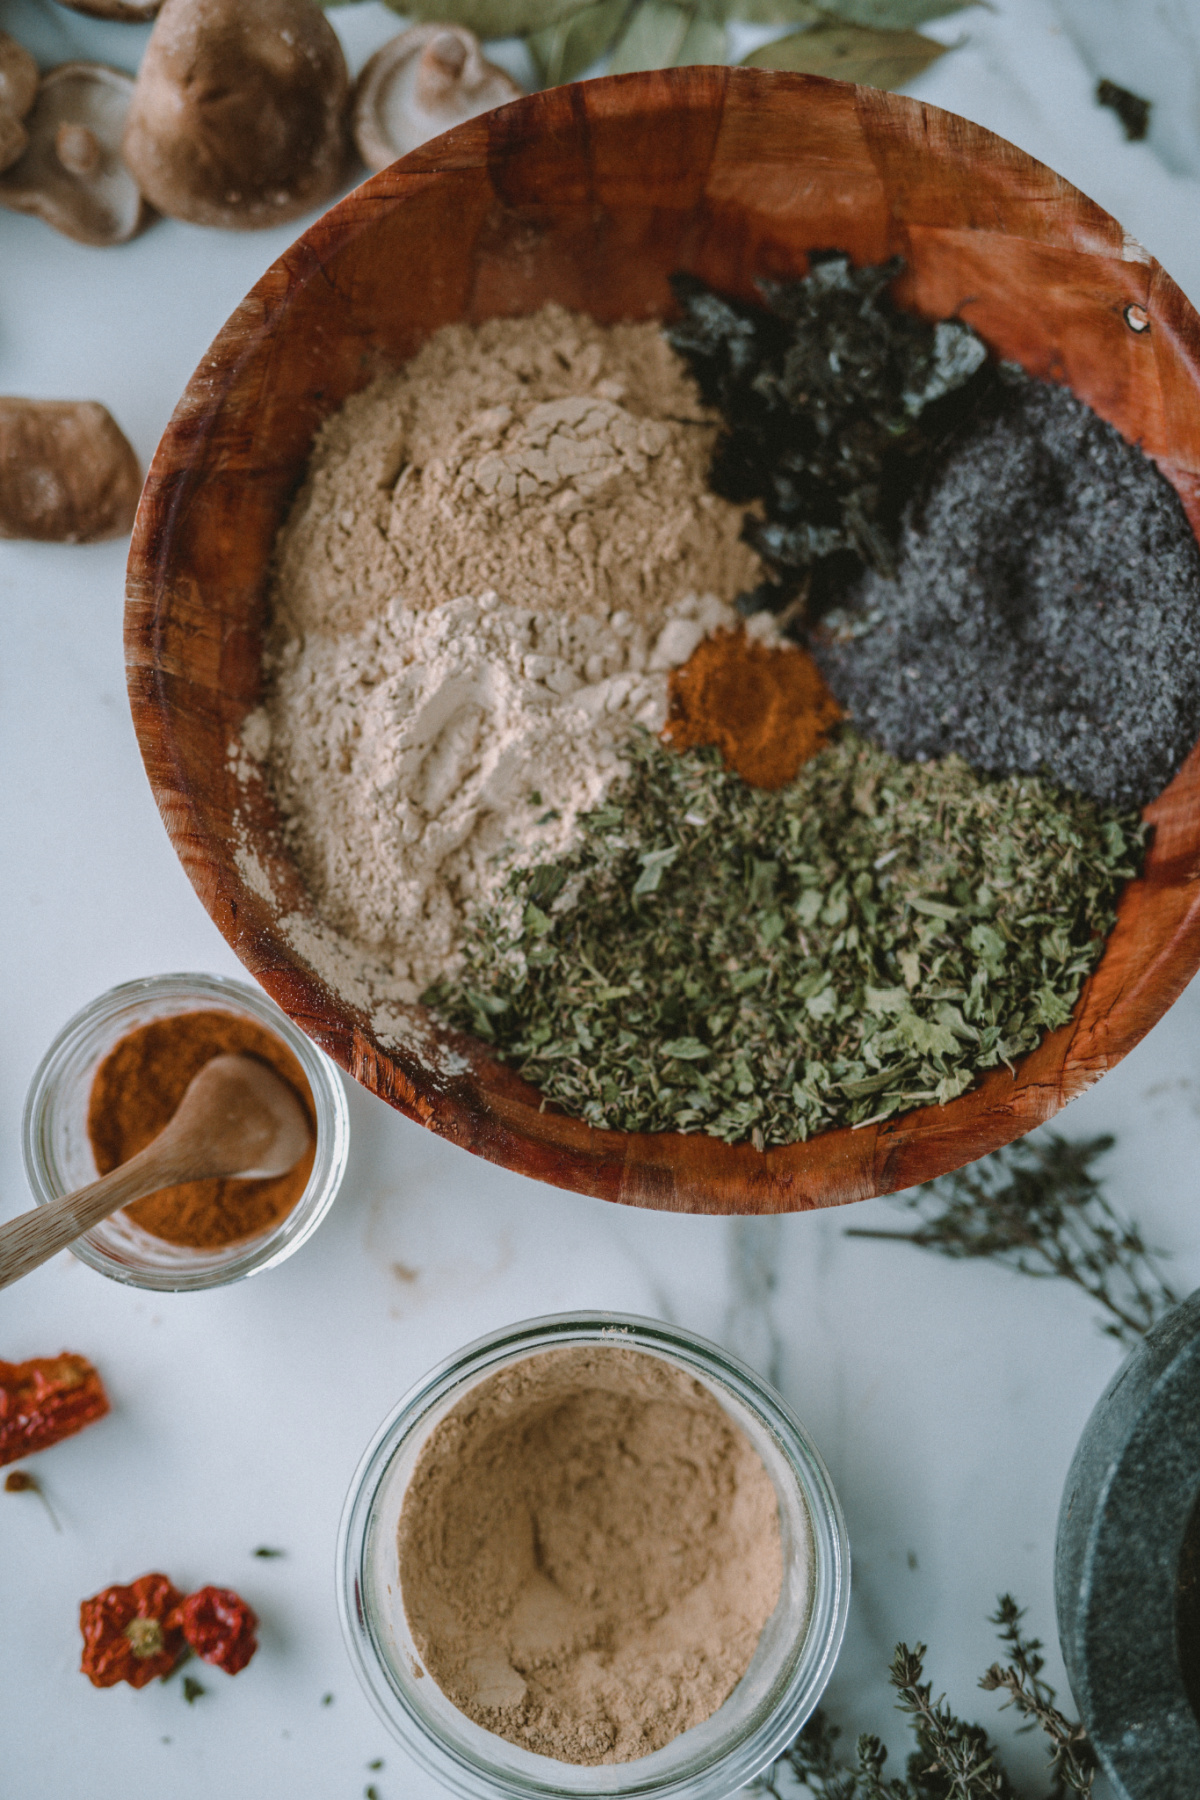 herbal soup seasoning mix in a wooden bowl